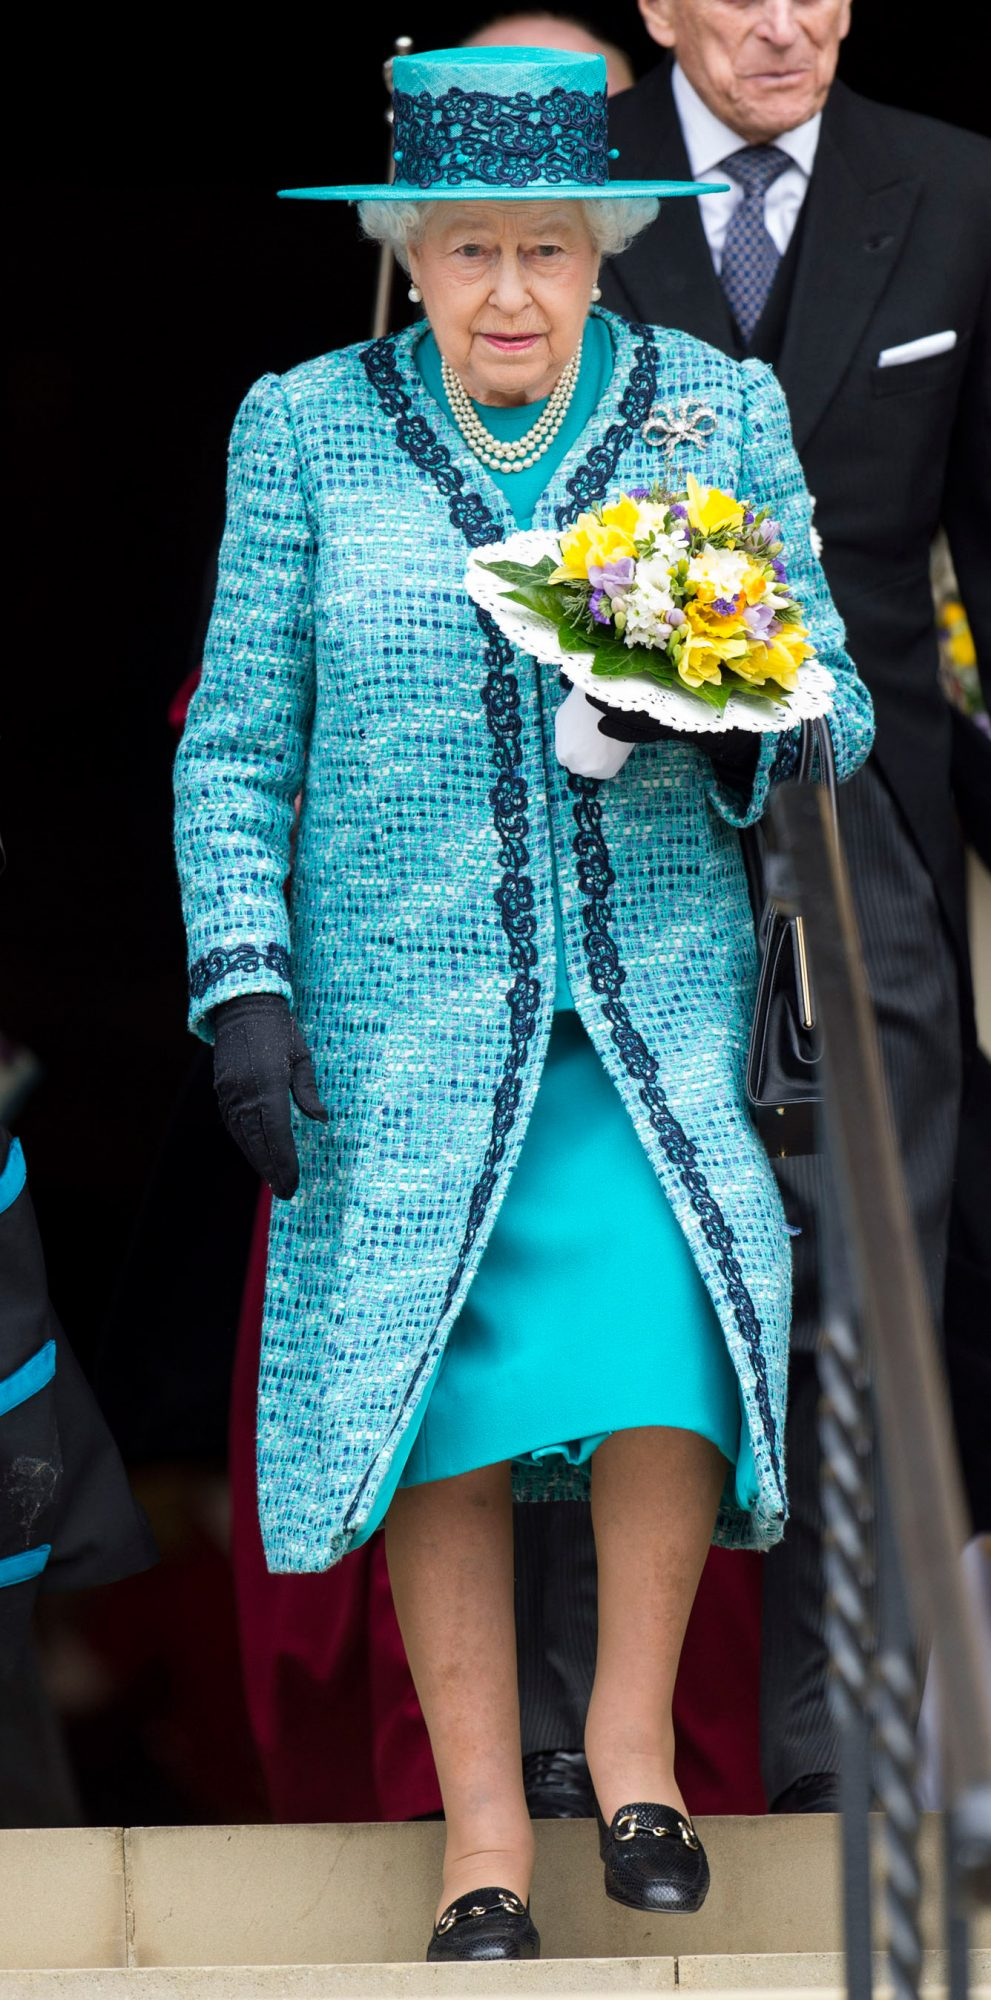 <p>Turquoise - March 24, 2016</p>